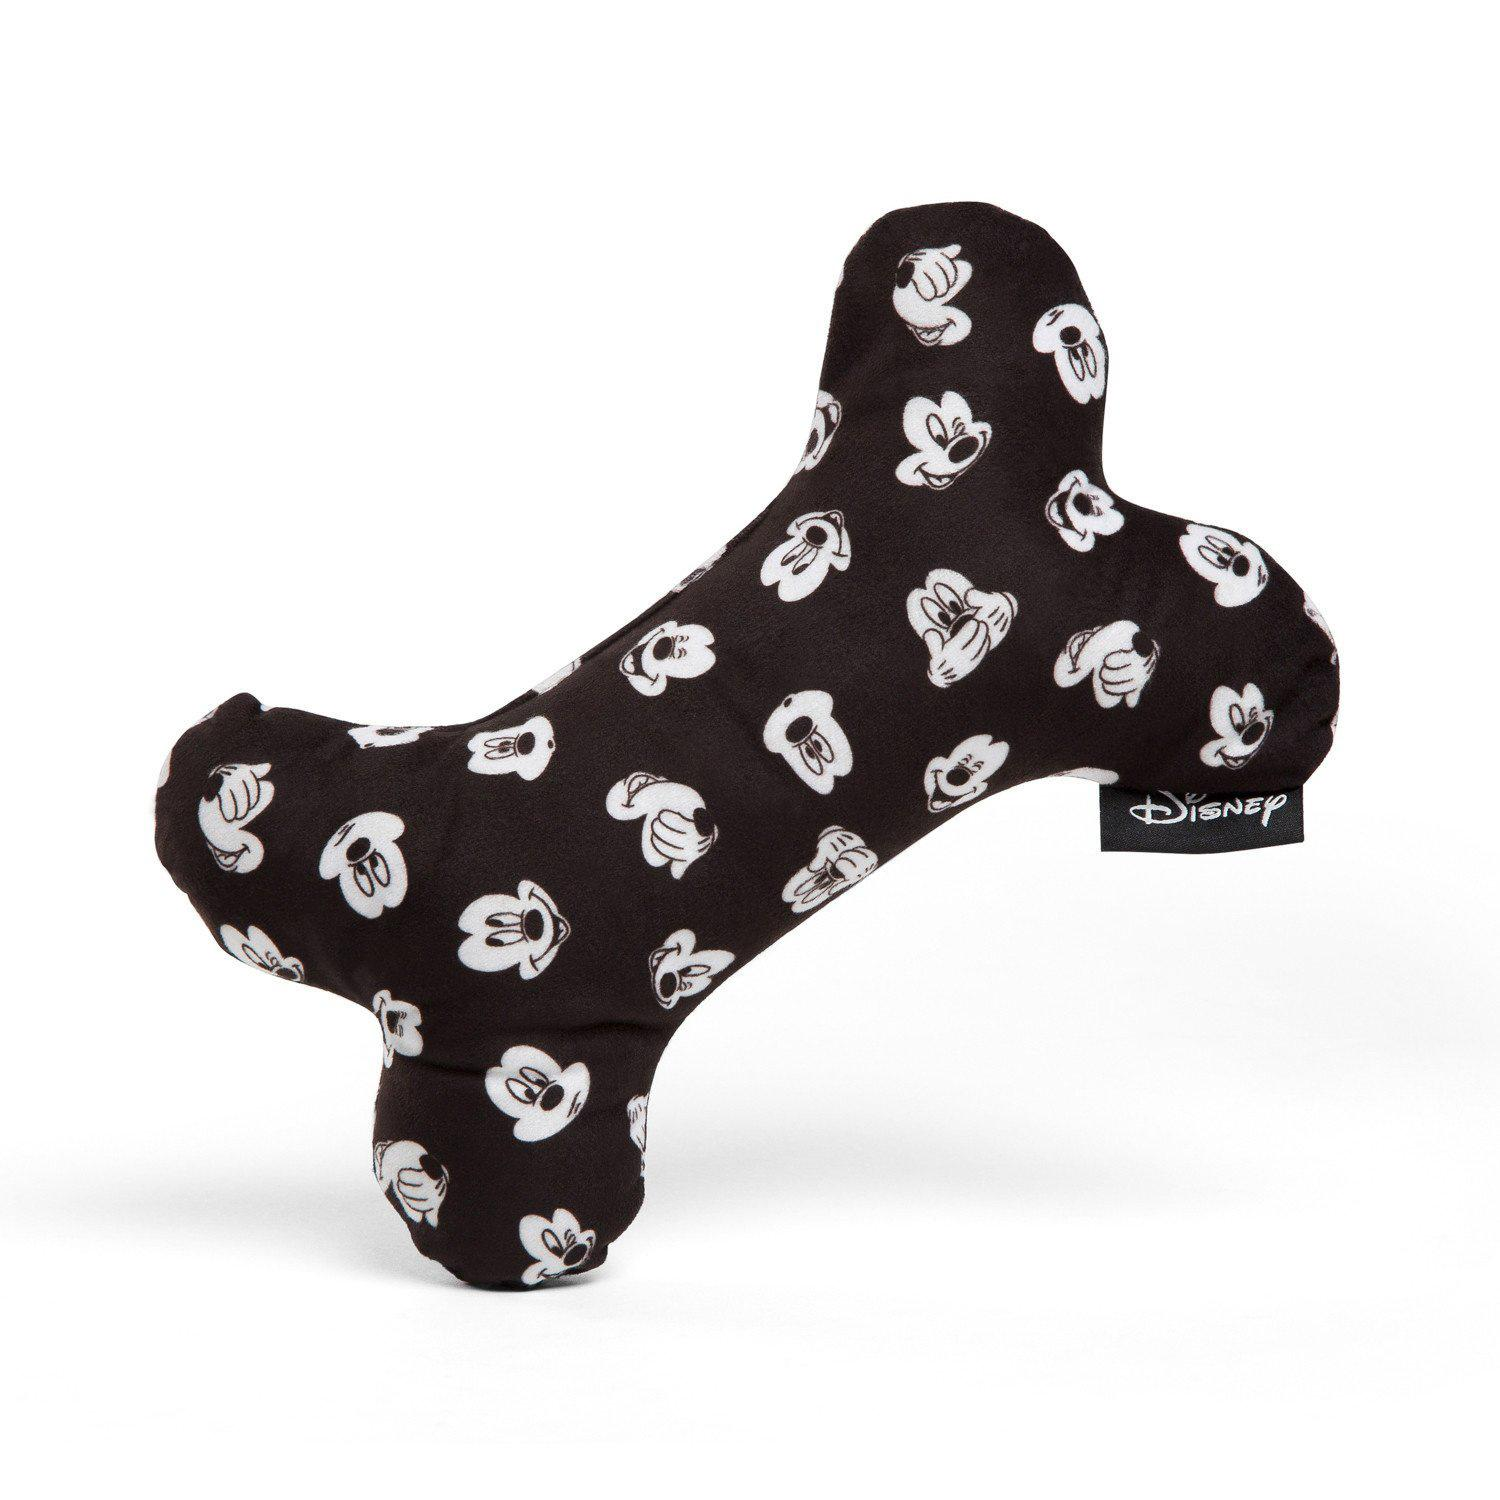 Disney Plush Bone Dog Toy - Mickey Expression Prints